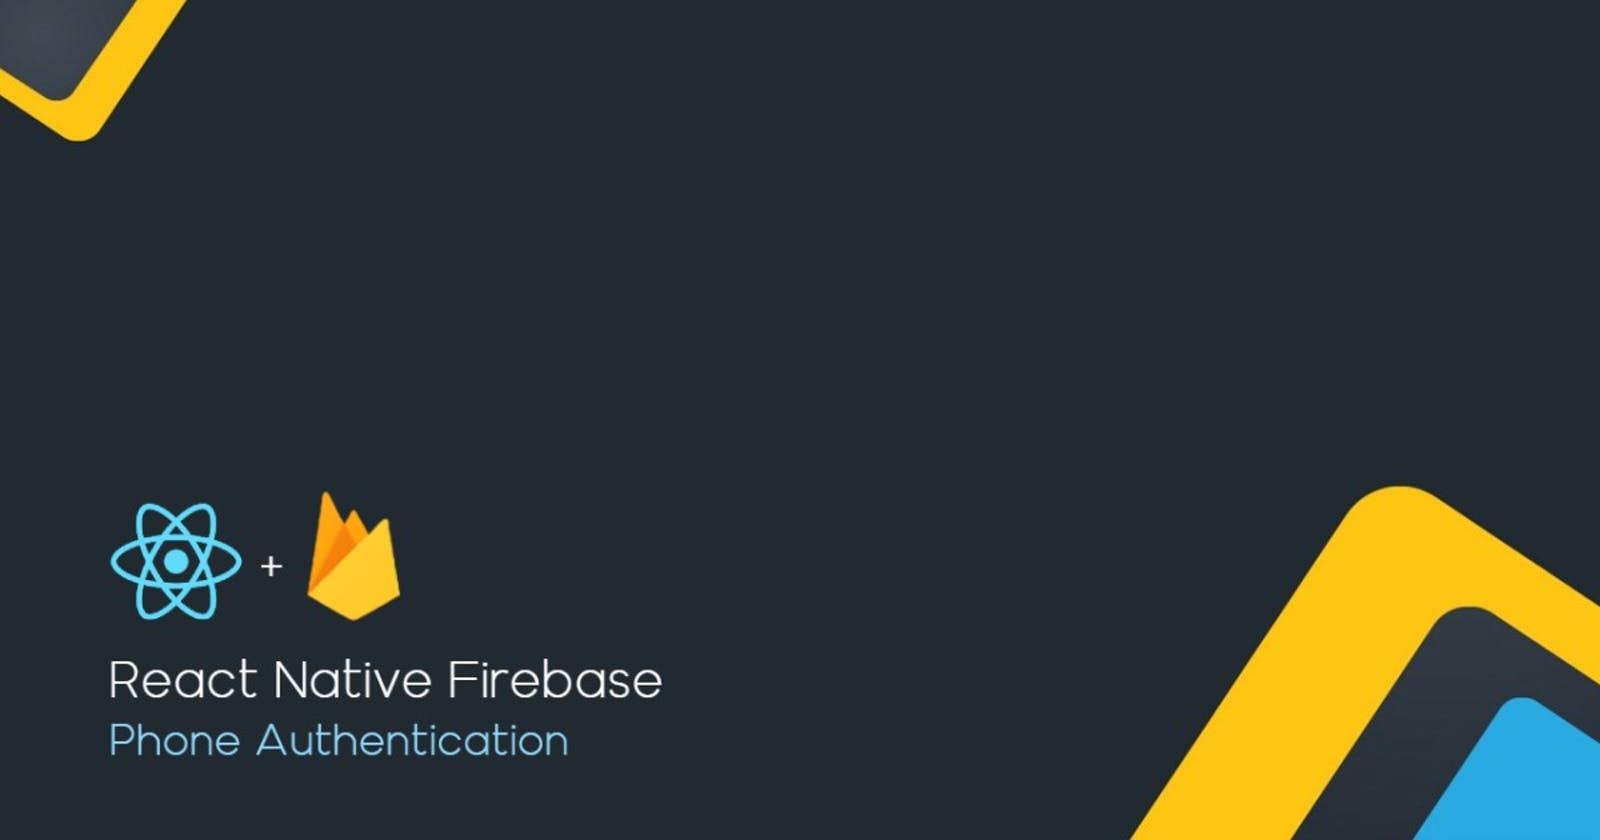 Phone Number Authentication using Firebase in React Native